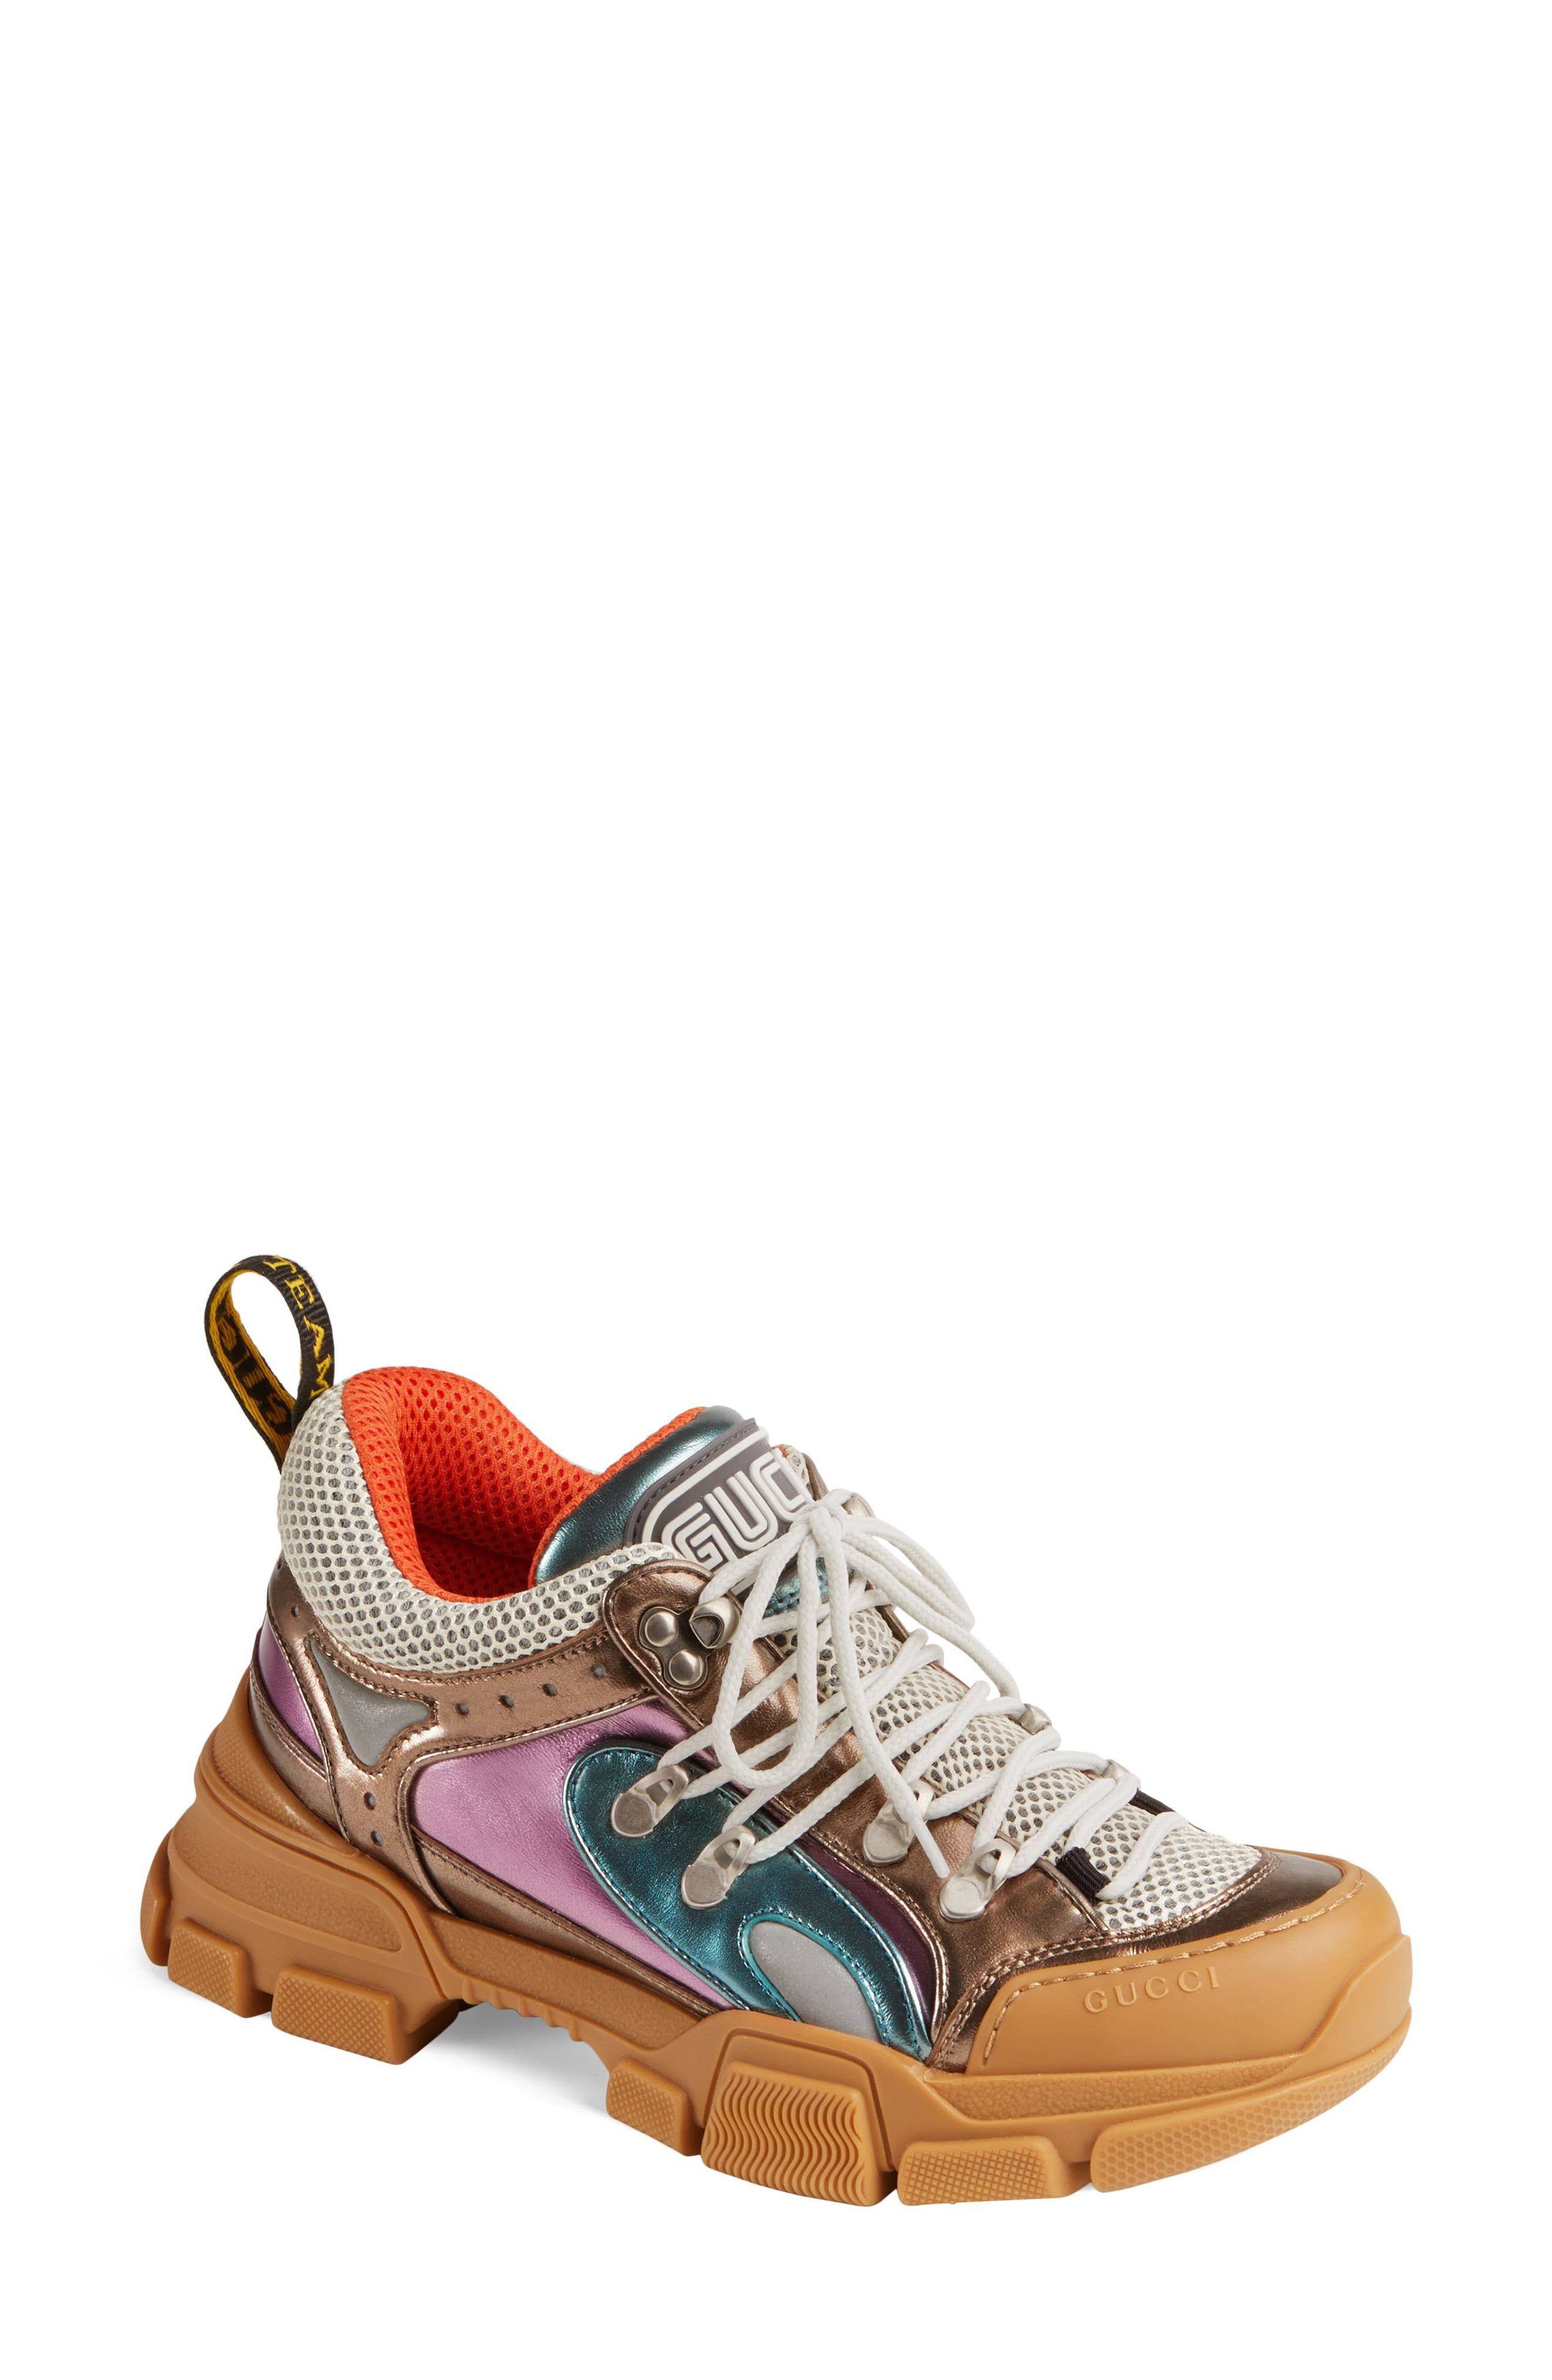 GUCCI Flashtrek Lace-Up Sneaker, Main, color, BROWN/ BLUE/ PINK